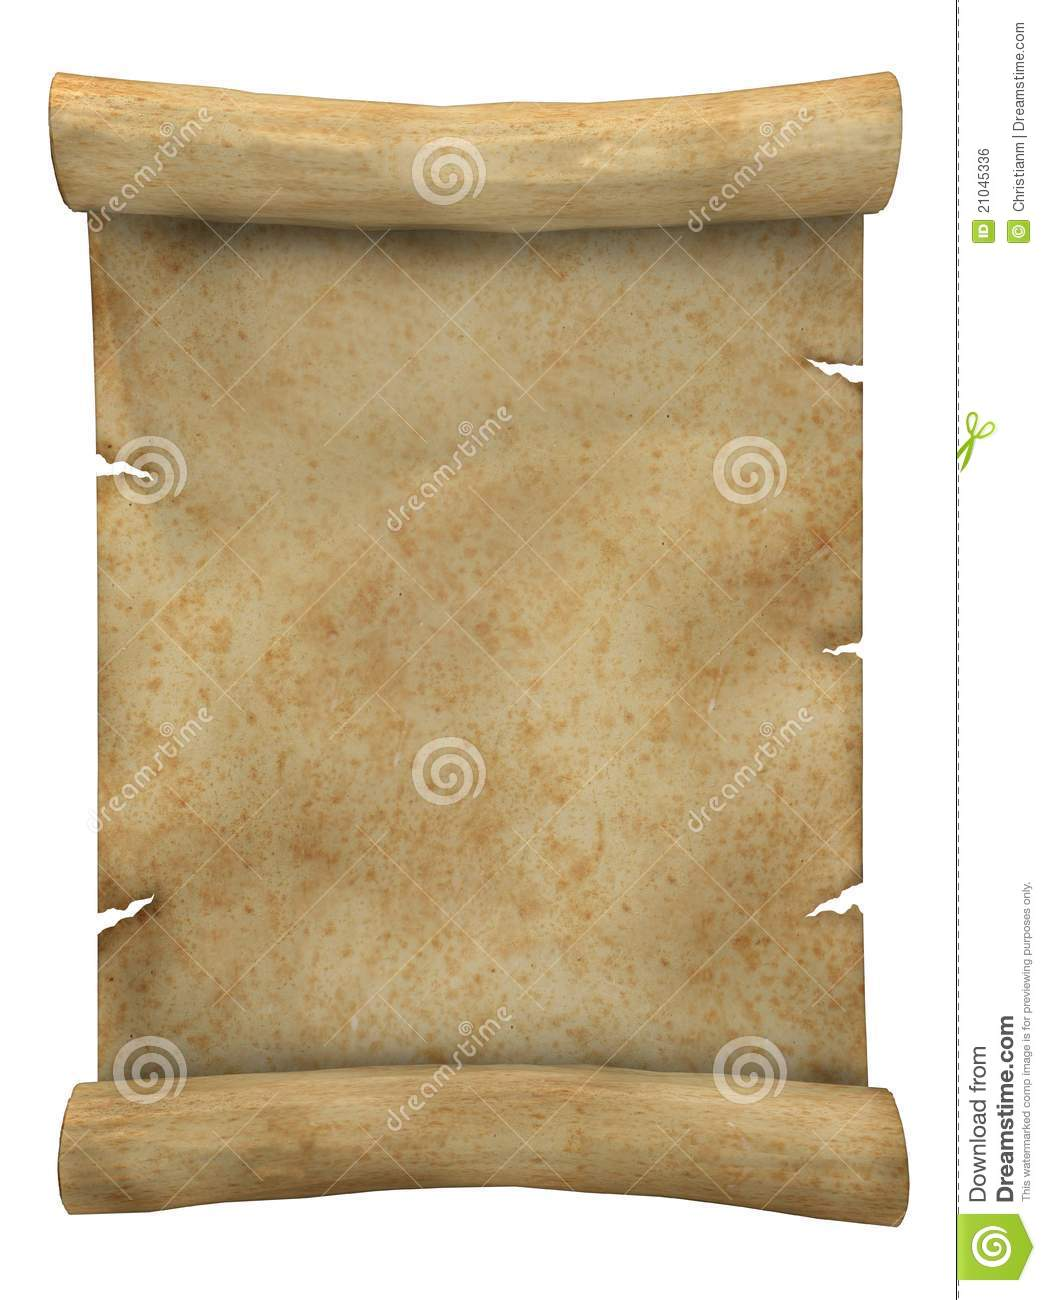 Ripped Old Paper: Old Paper Scroll Royalty Free Stock Image